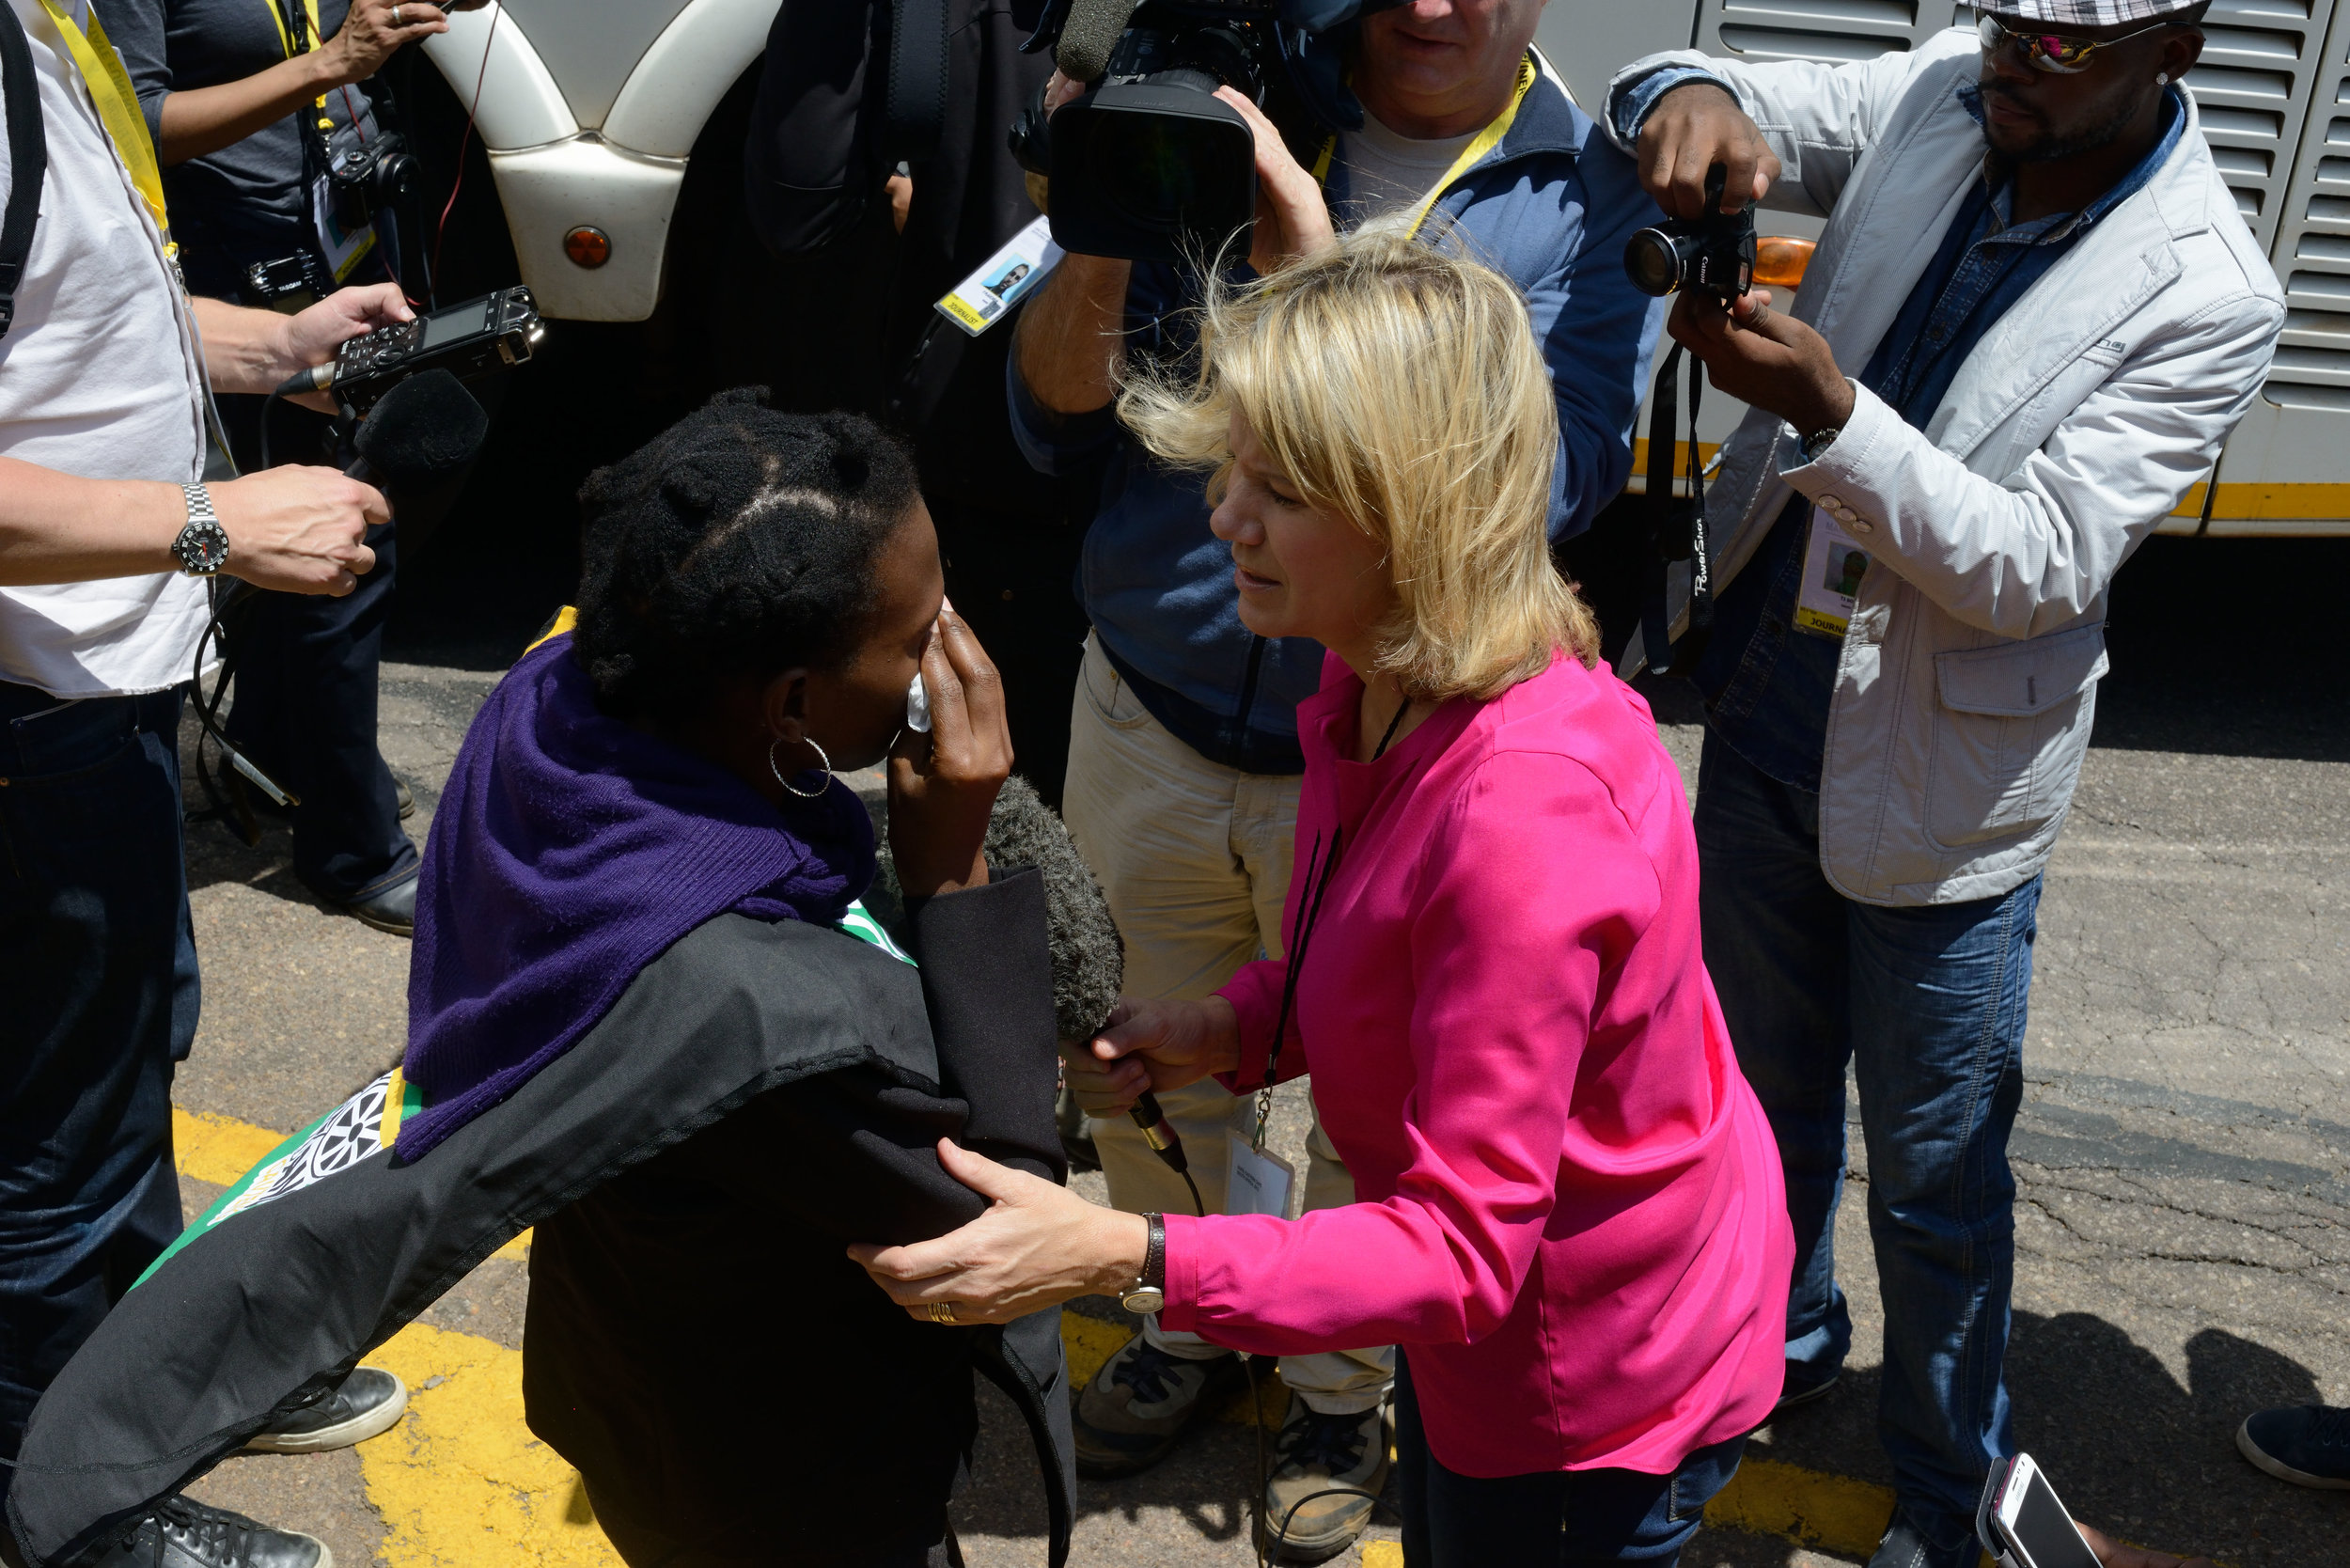 "An anchorwoman interviewing a mourner who has just viewed the body of Nelson Mandela lying in state, Pretoria, South Africa  At the Rivonia Trial, in which he and his comrades were sentenced to life in prison on Robben Island for committing high treason, Nelson Mandela defiantly claimed, ""I have cherished the ideal of a democratic and free society in which all persons live together in harmony and with equal opportunities. It is an ideal, which I hope to live for and to achieve. But if needs be, it is an ideal for which I am prepared to die.""  Born into a royal family of the Thembu tribe, Mandela spent his boyhood herding sheep and goats.  He lived to become the first black president of South Africa, a Nobel Prize winner, and a deeply revered figure throughout the world.   When Mandela visited the United States in 2008 he was required to obtain special State Department clearance because his name remained on the U.S. Terrorism watchlist."